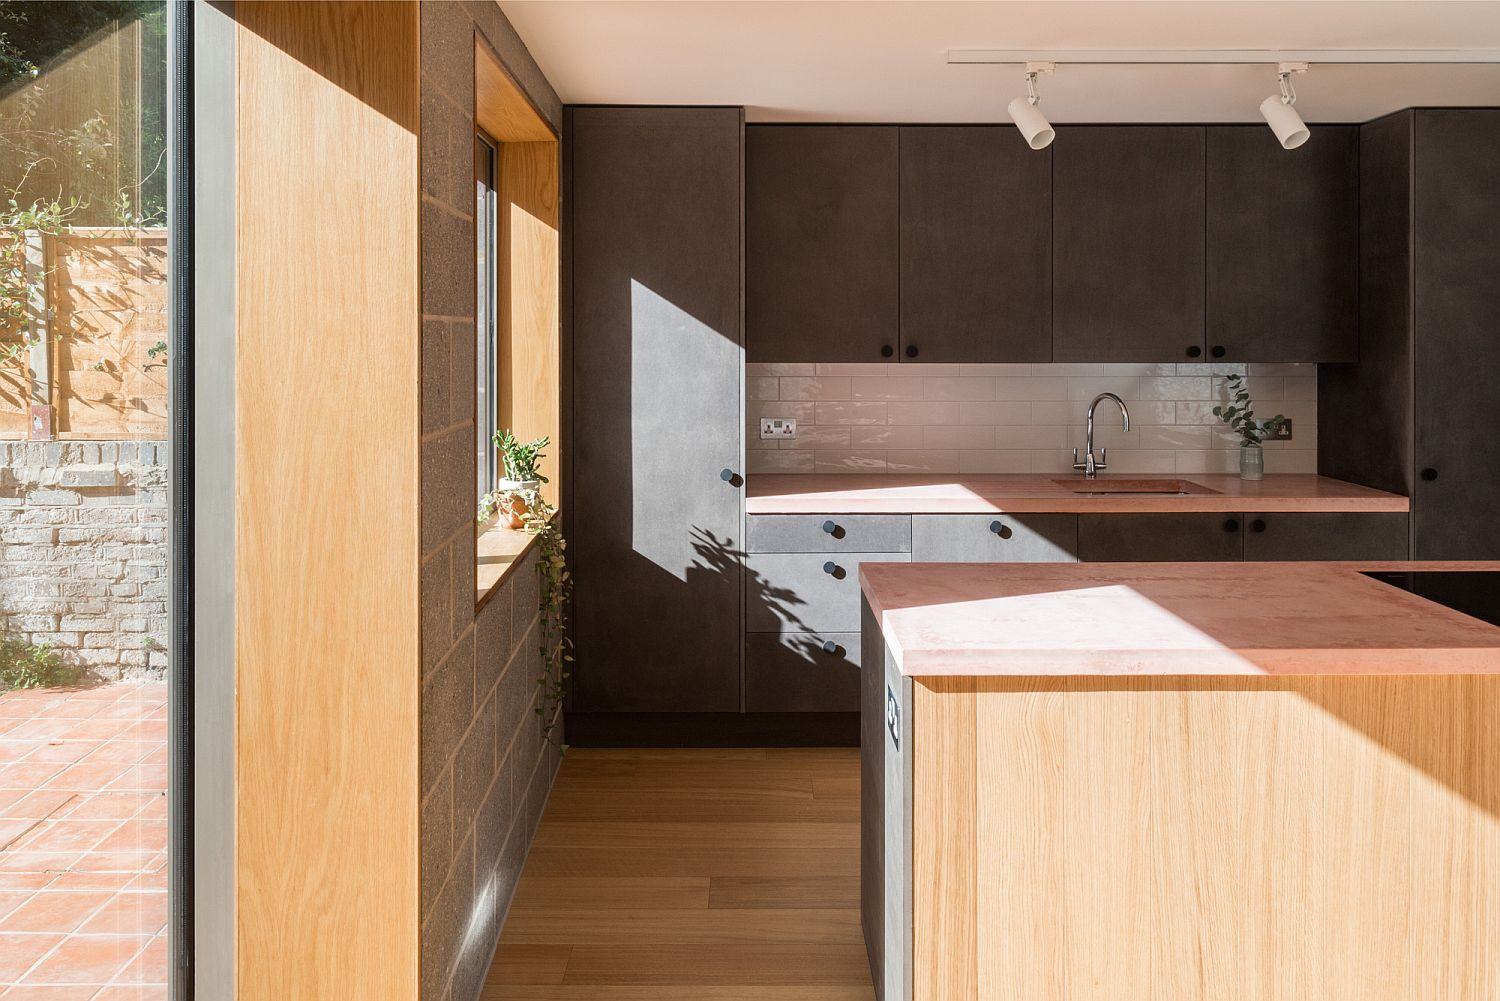 Allowing your kitchen to bathe in natural light makes for a healthier lifestyle